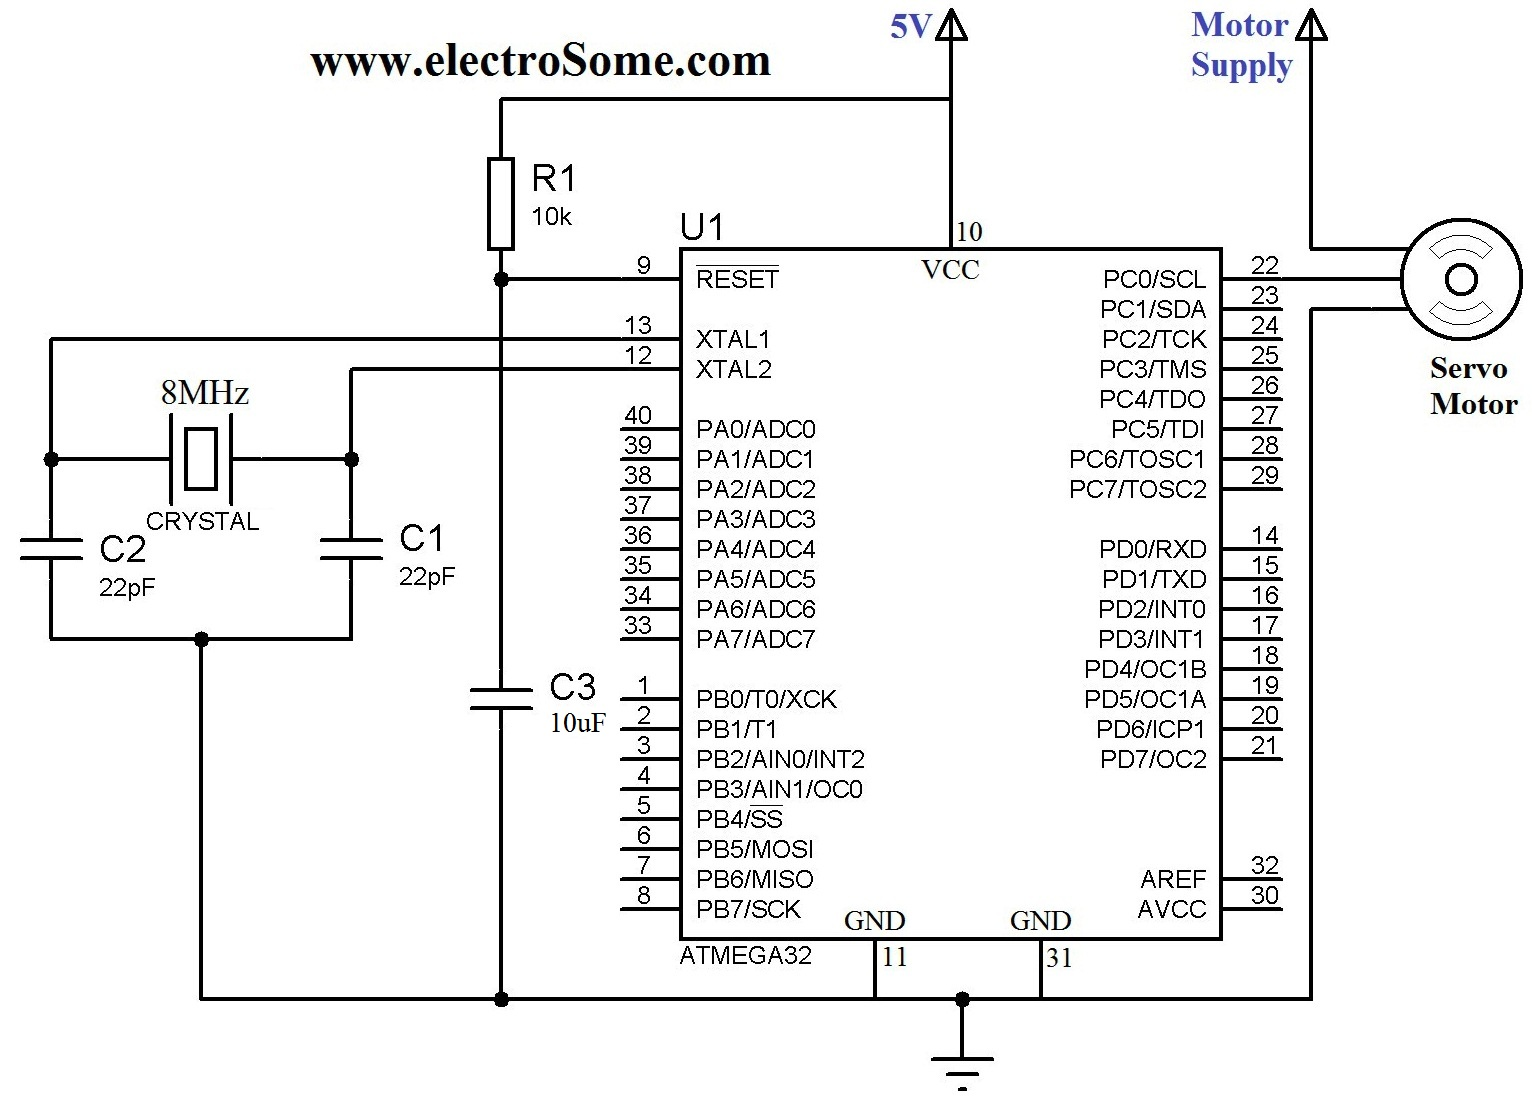 Interfacing Servo Motor with Atmega32 Microcontroller Circuit Diagram servo control circuit diagram servo motor controller kit \u2022 wiring  at bayanpartner.co